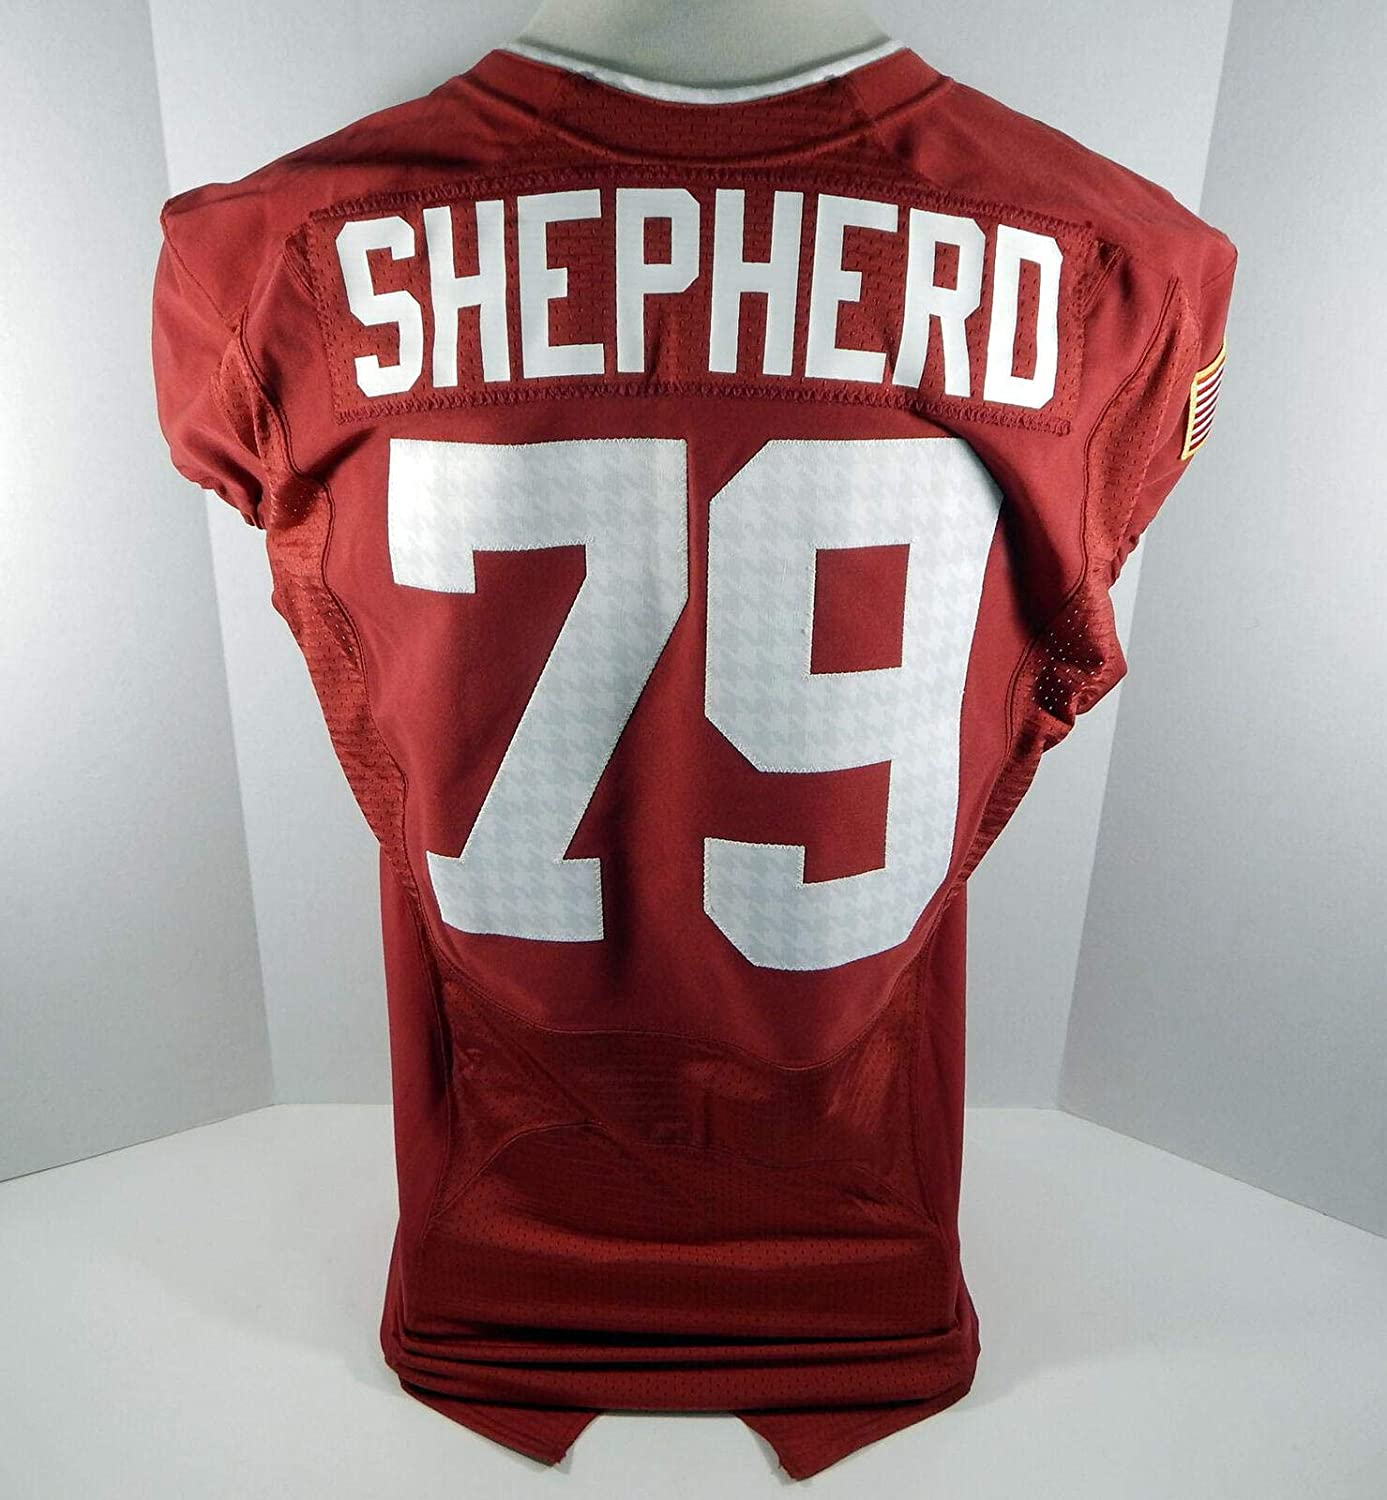 2010-14 Alabama Crimson Tide Austin Shepherd #79 Game Used Red Jersey BAMA00154 - College Game Used